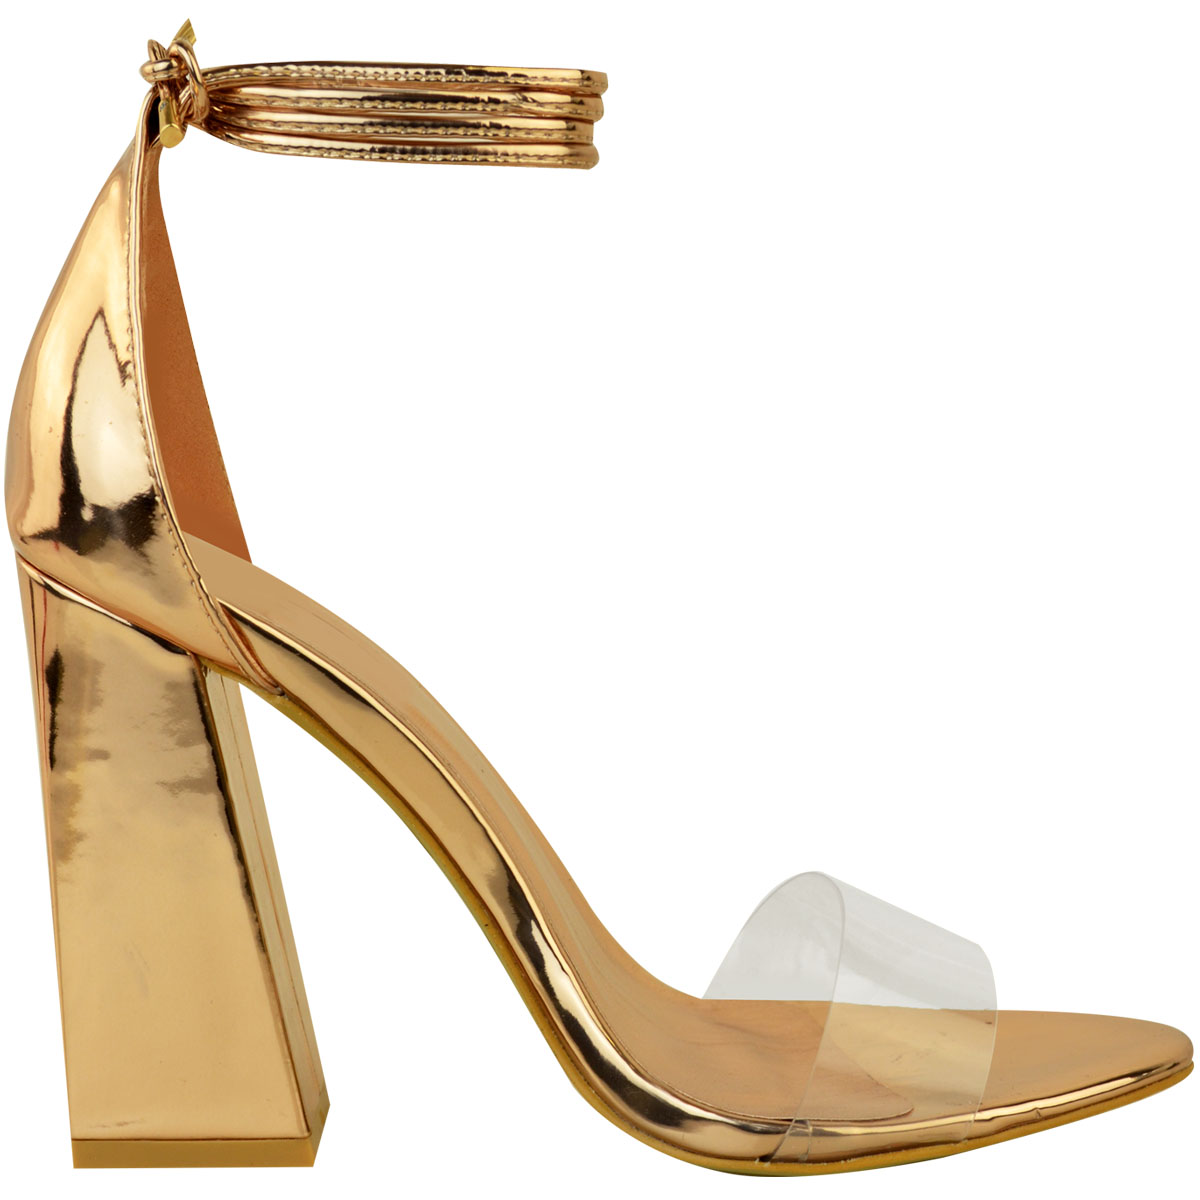 92da022c395 New Womens Perspex Clear Block Heel Strappy Sandals Ankle Lace Tie ...